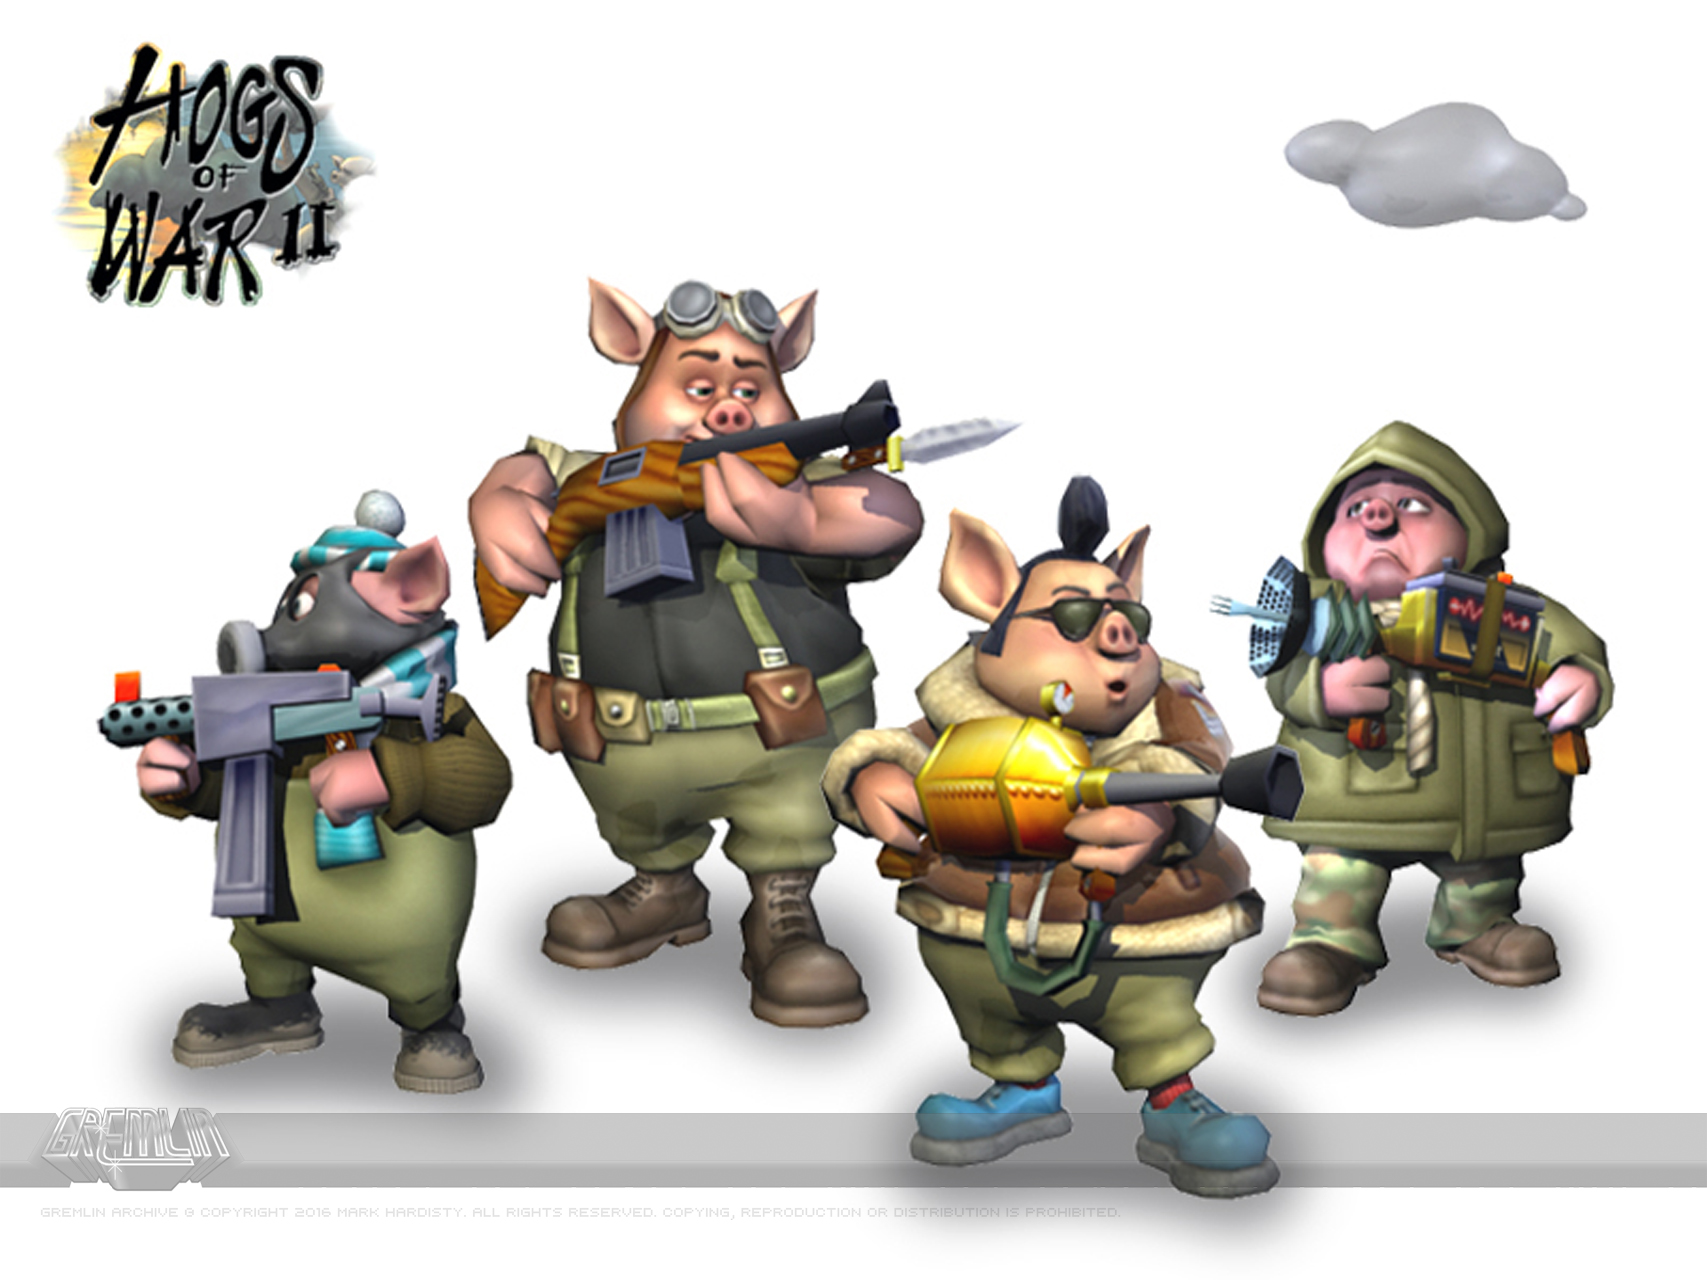 Hogs of War II Concept Artwork